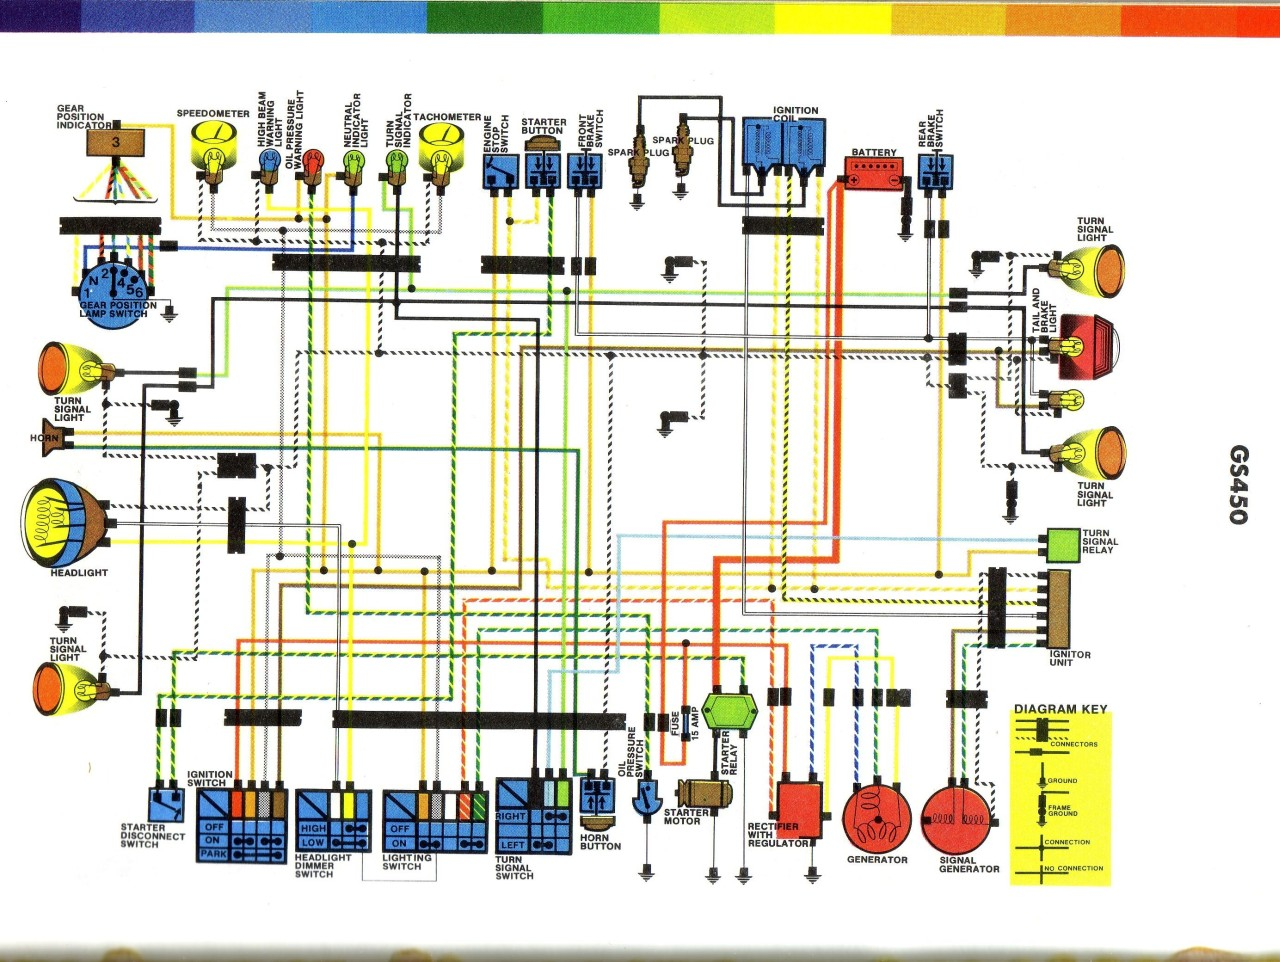 1980 GS450L Wiring Issues (no lights)   Cafe Racer Forum   Gs850 Wiring Diagram      Cafe Racer Forum